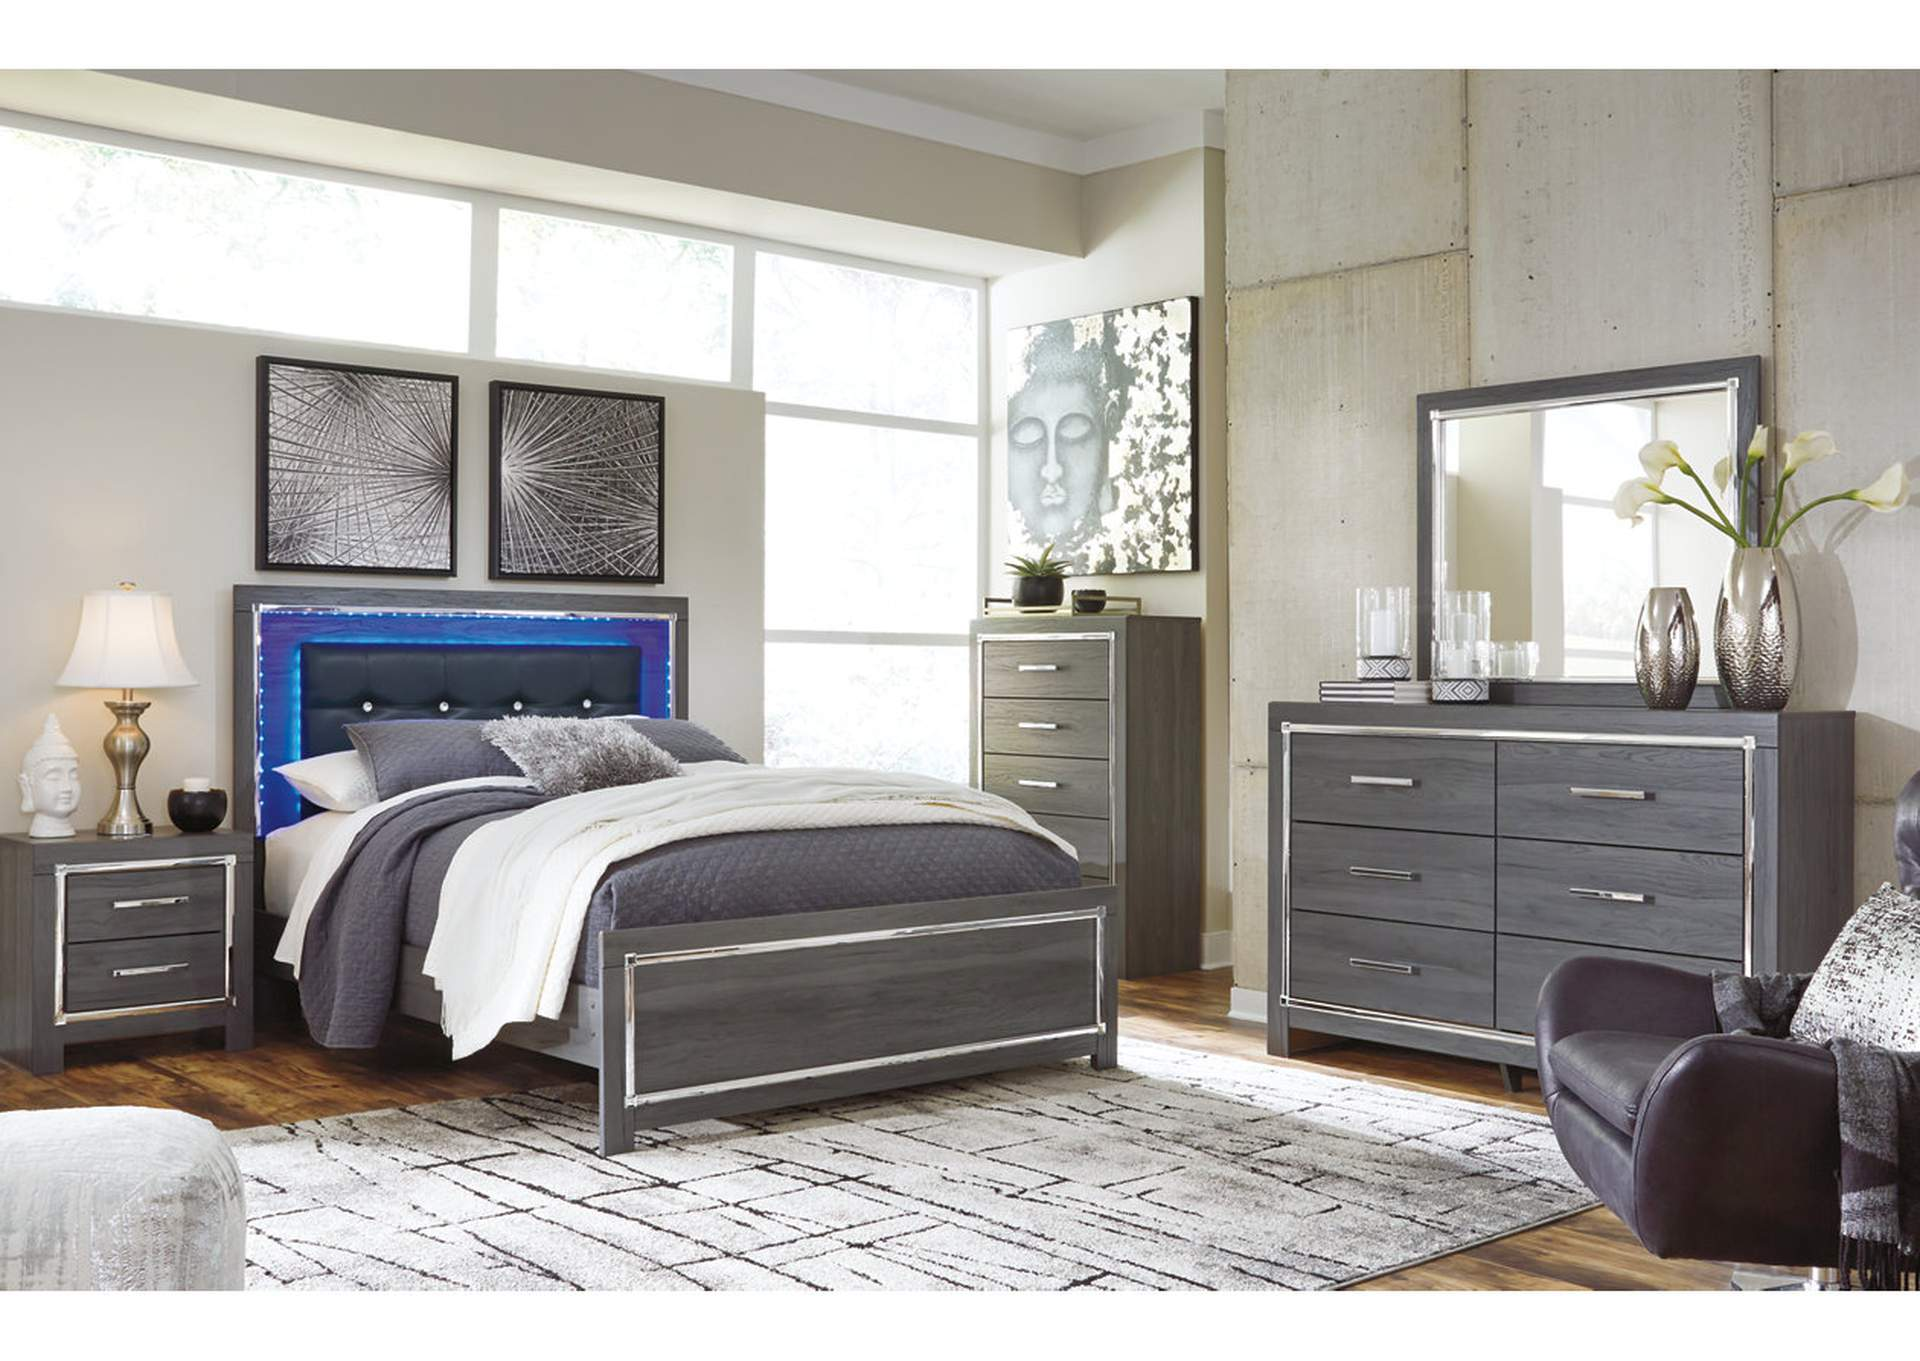 Lodanna King Panel Bed with Dresser and Mirror,Signature Design By Ashley